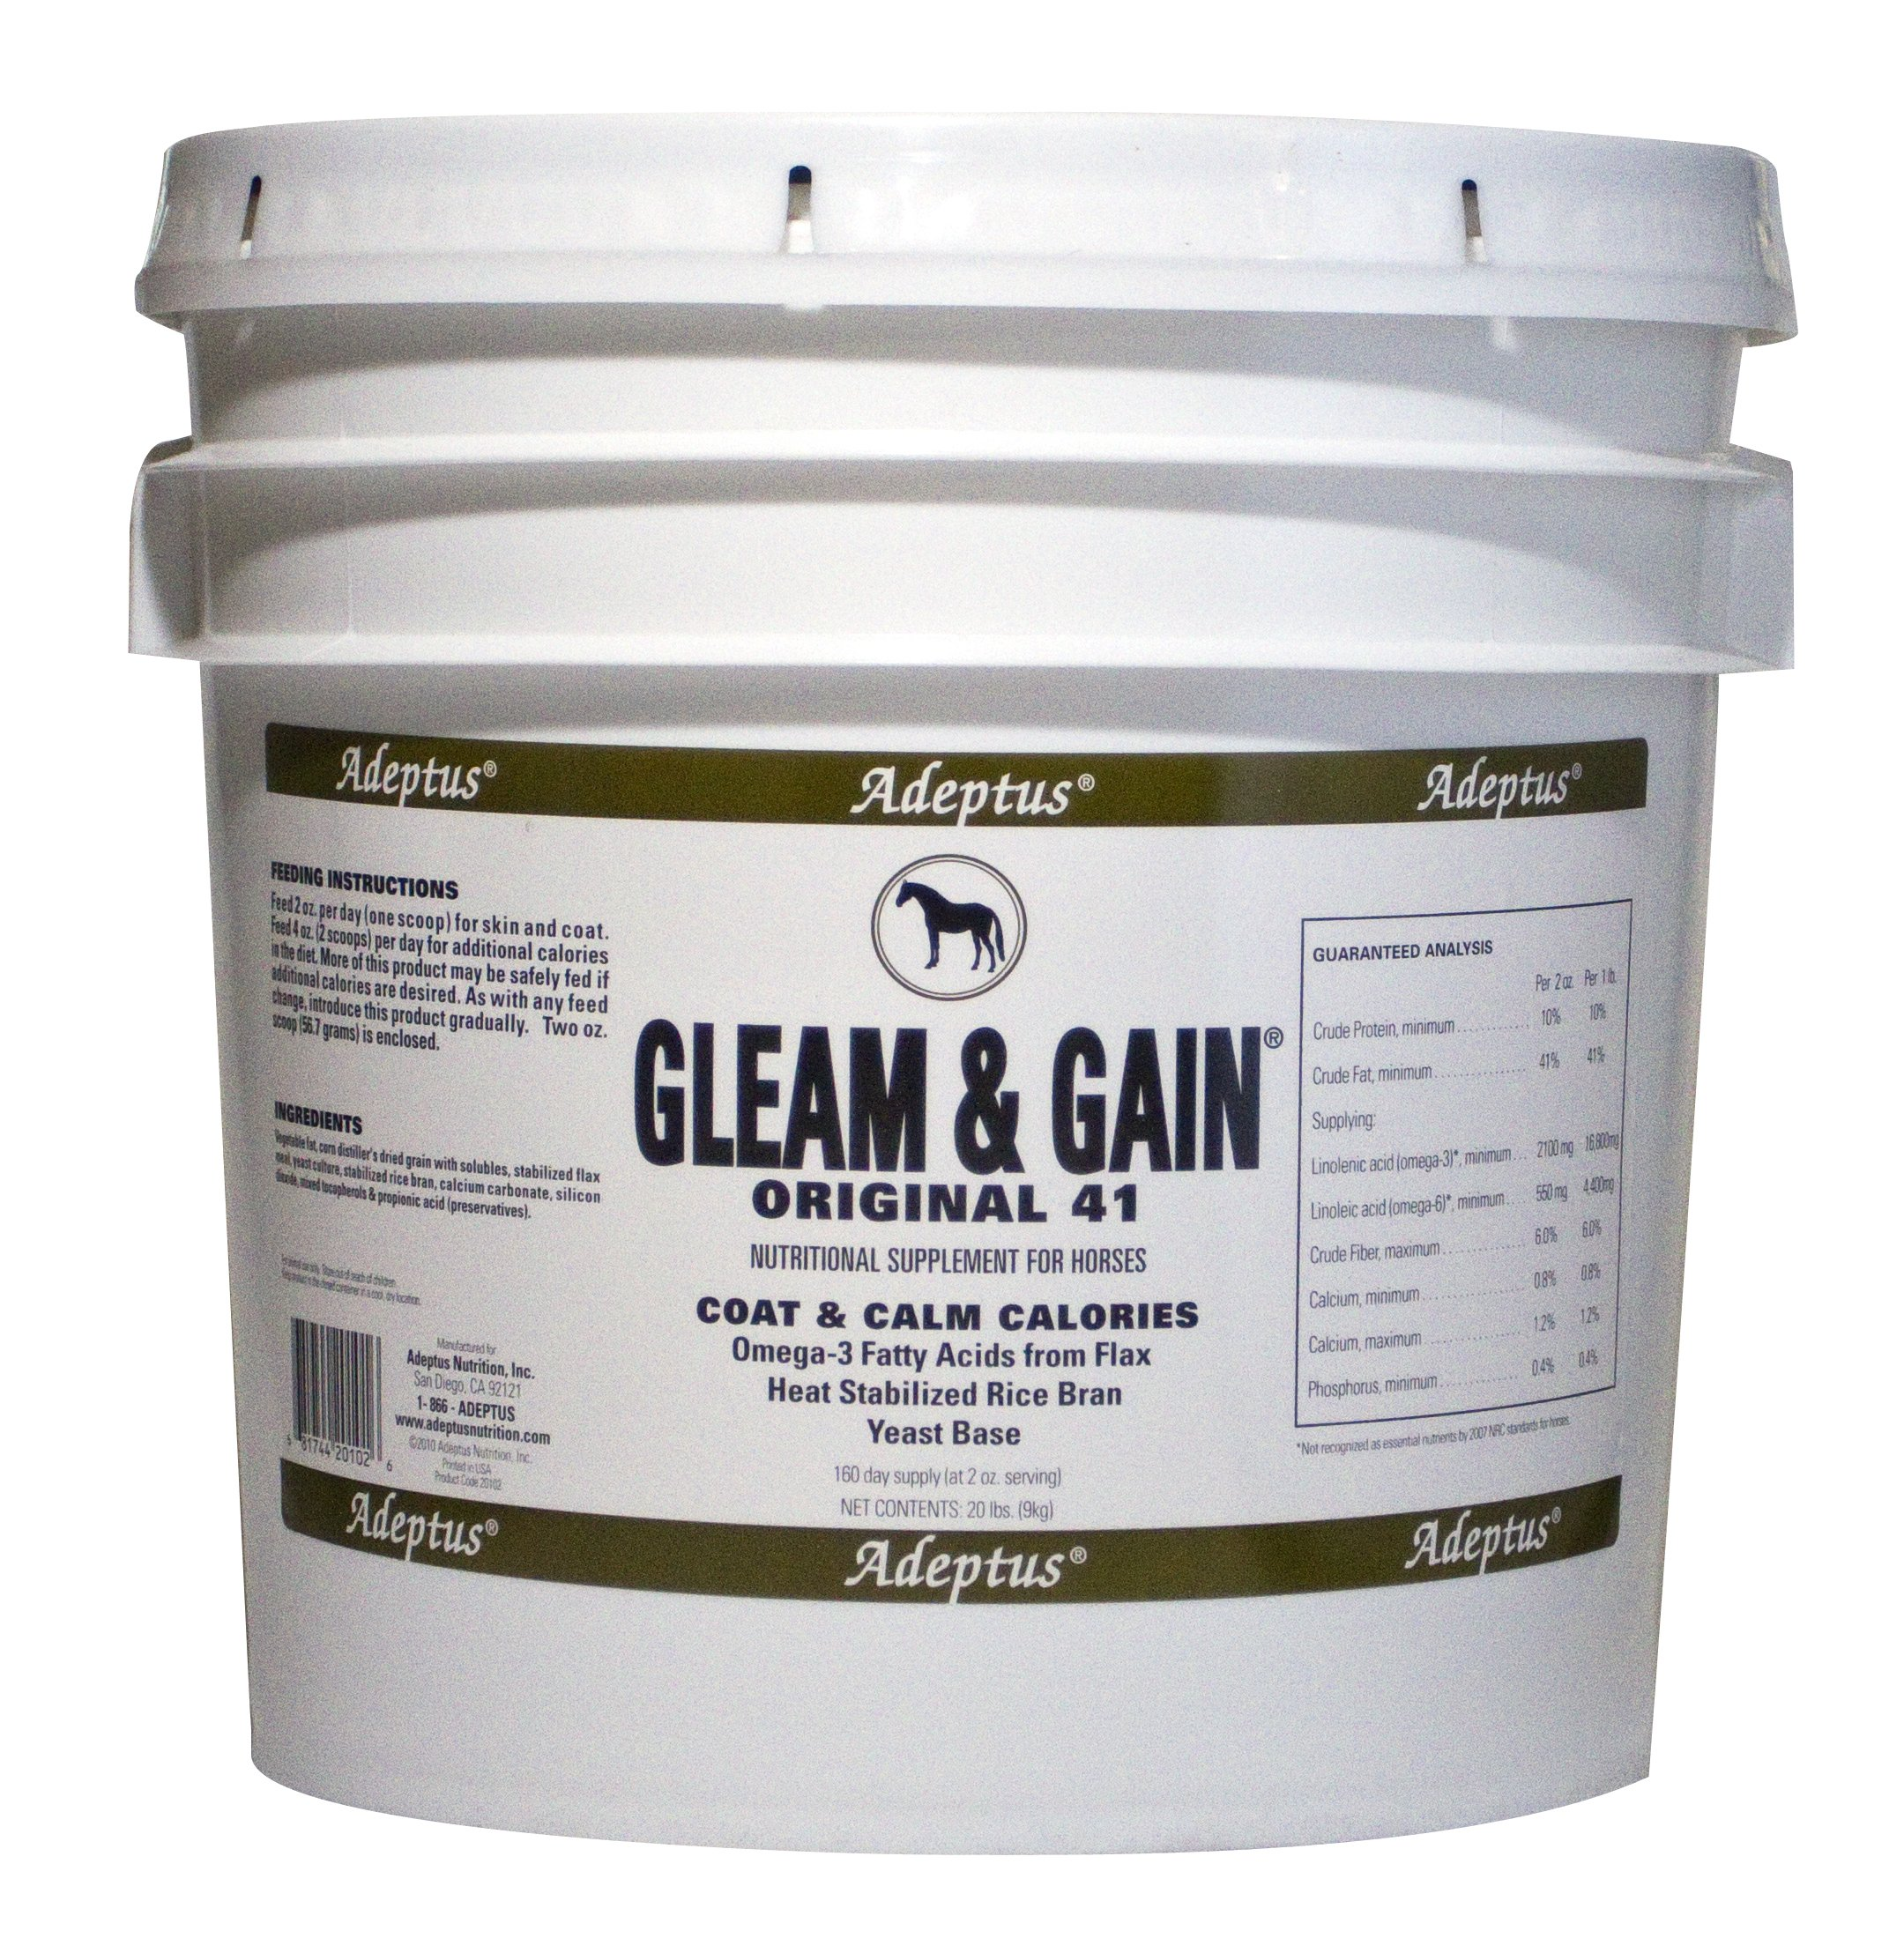 Adeptus Nutrition Gleam and Gain Original 41 EQ Joint Supplements, 20 lb./12 x 12 x 12 by Adeptus Nutrition